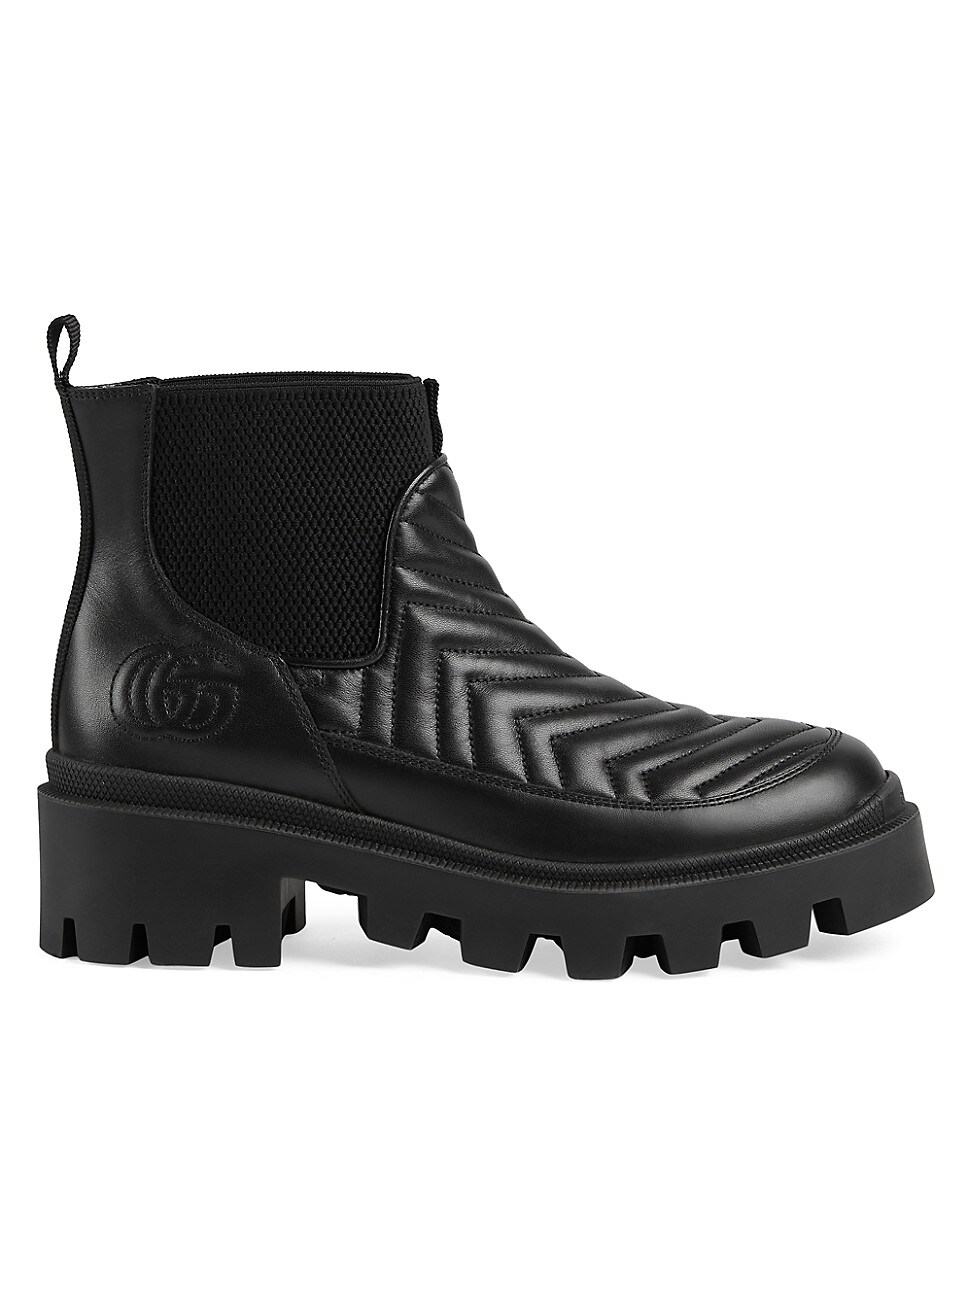 Gucci Leathers WOMEN'S FRANCES LEATHER BOOTS